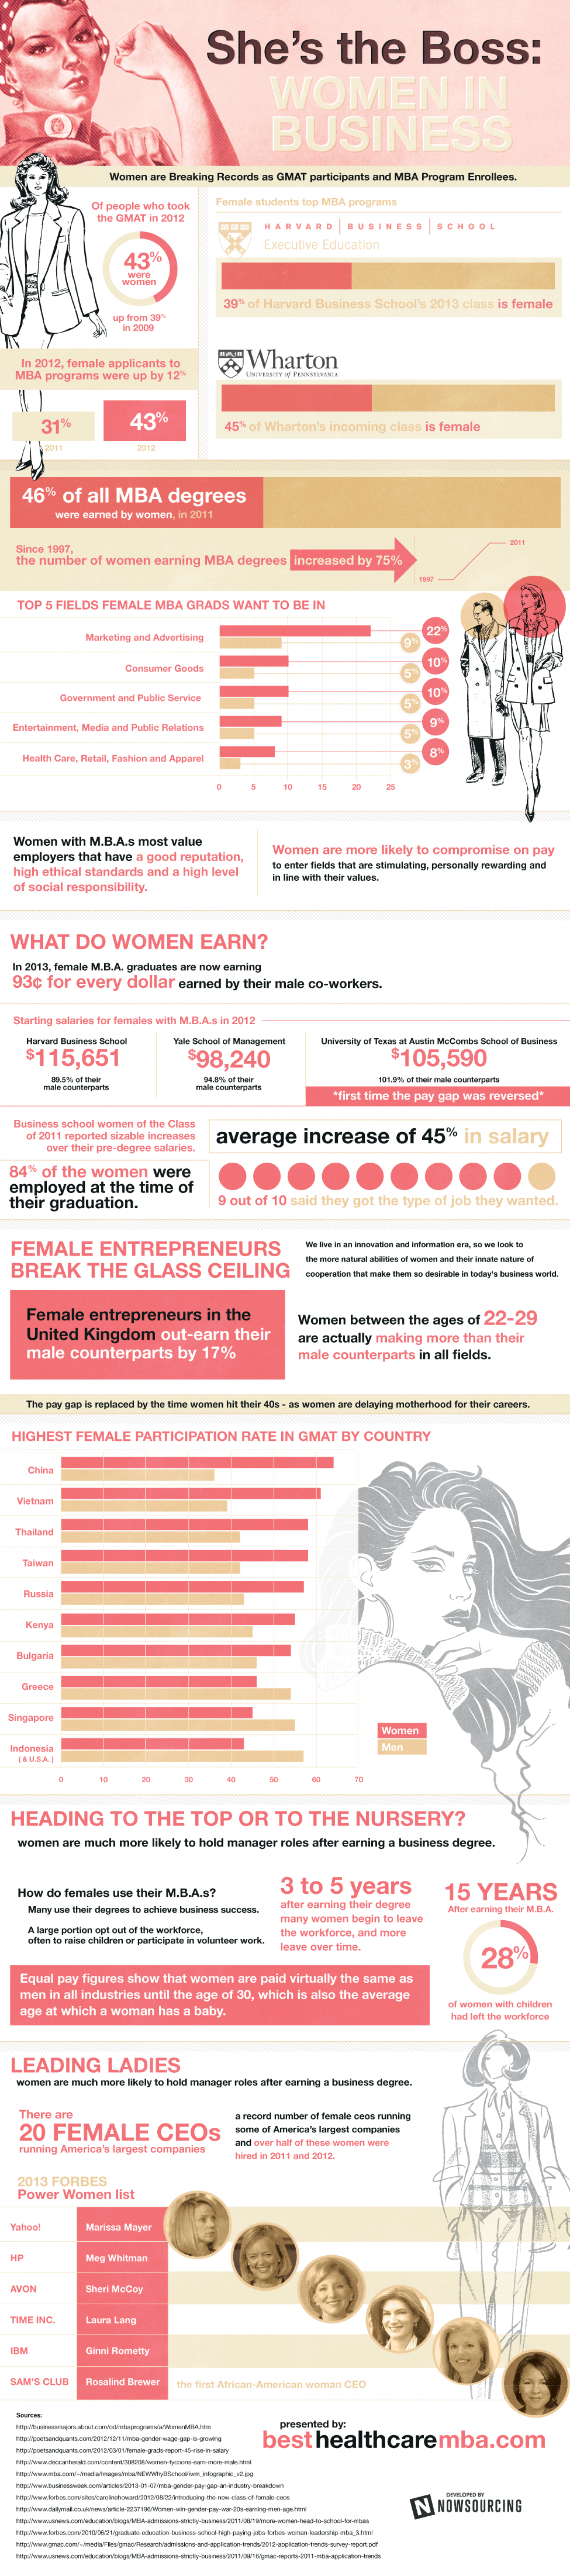 She's the Boss: Women in Business Infographic